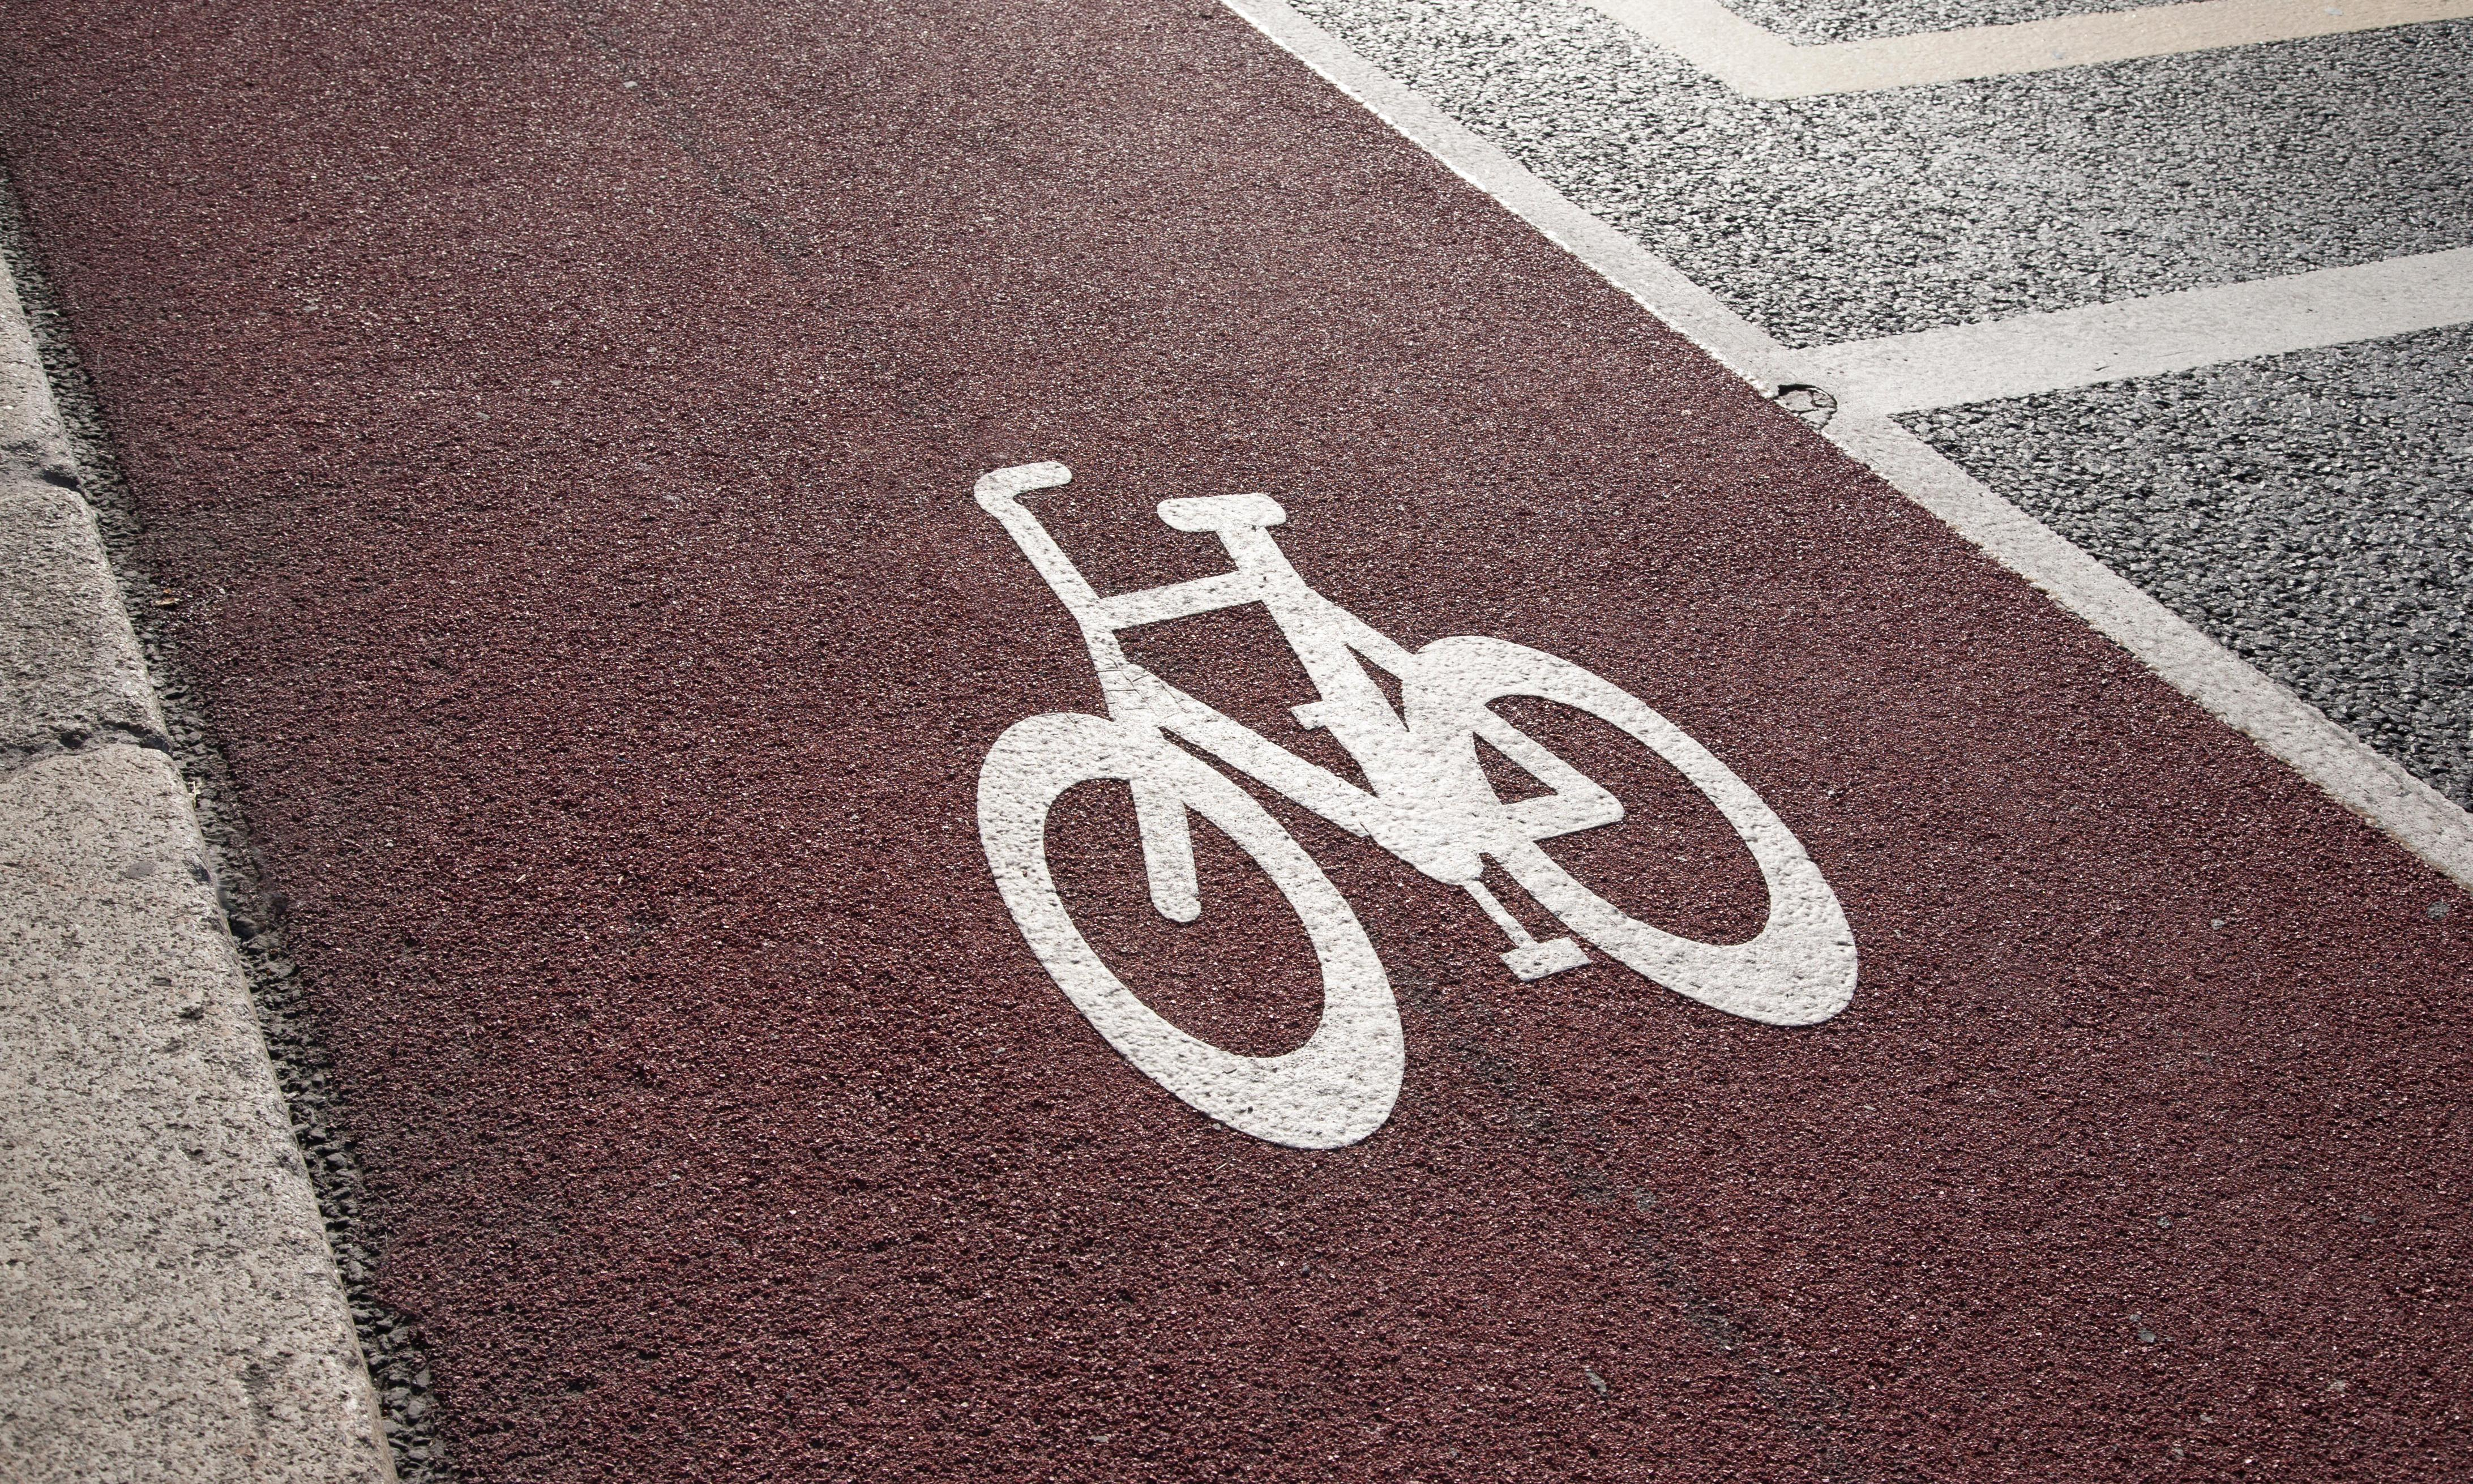 Woman 'poses as dead cyclist's aunt' to oppose new London bike lane